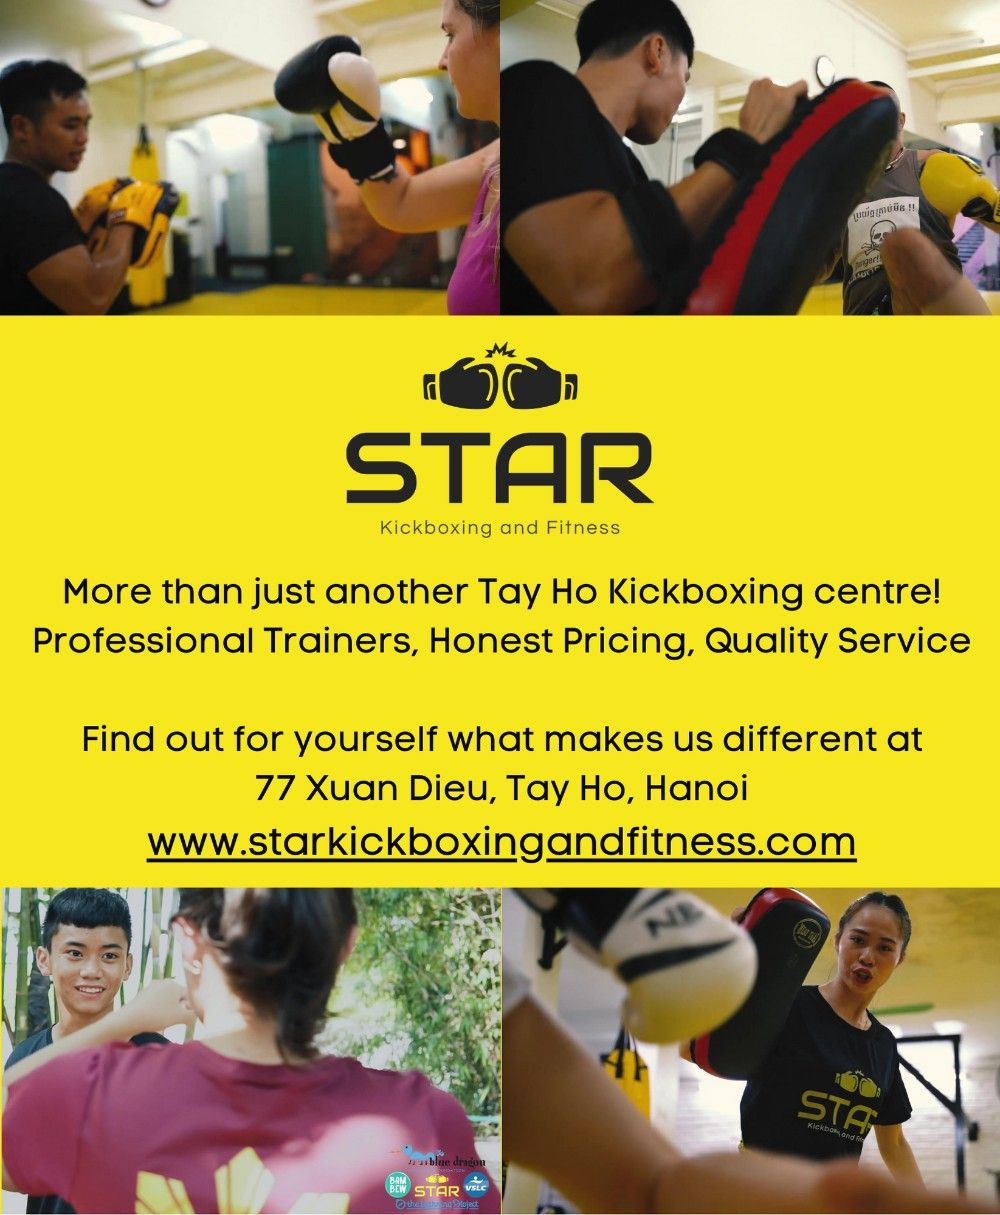 STAR Kickboxing and Fitness portfolio profile image